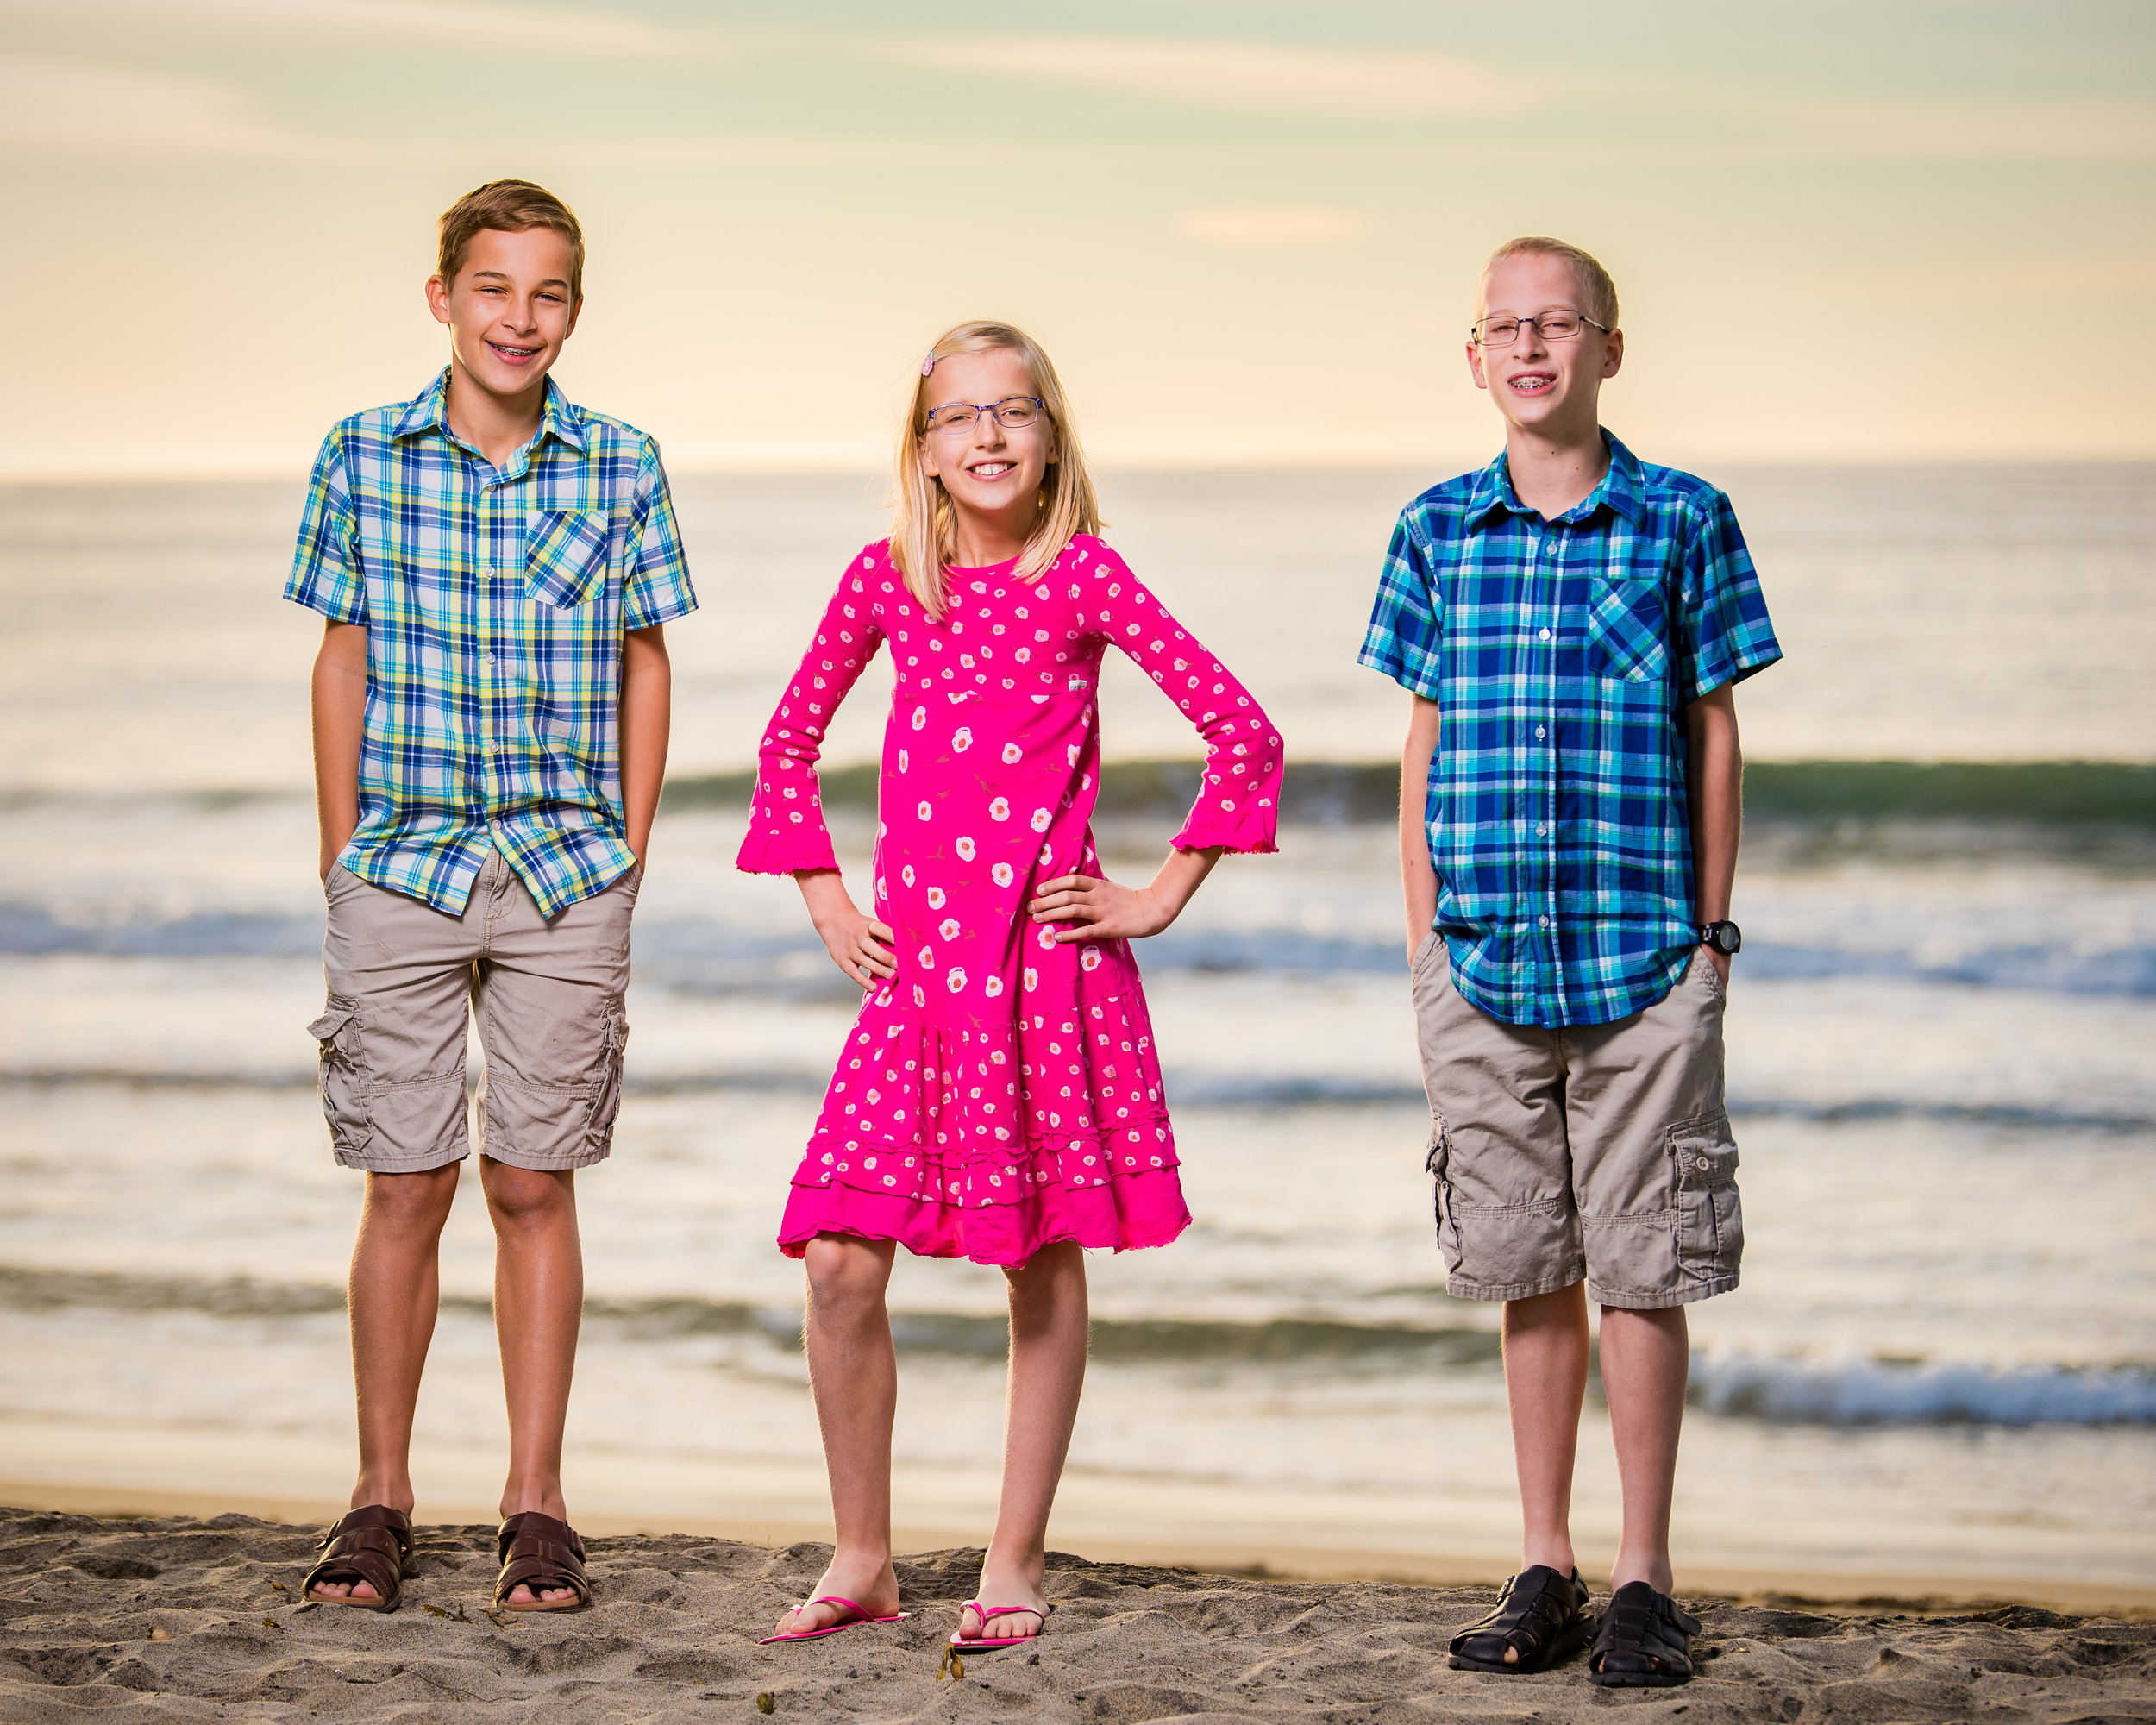 2016_December_04-Marsh_Family-33693-Edit.jpg